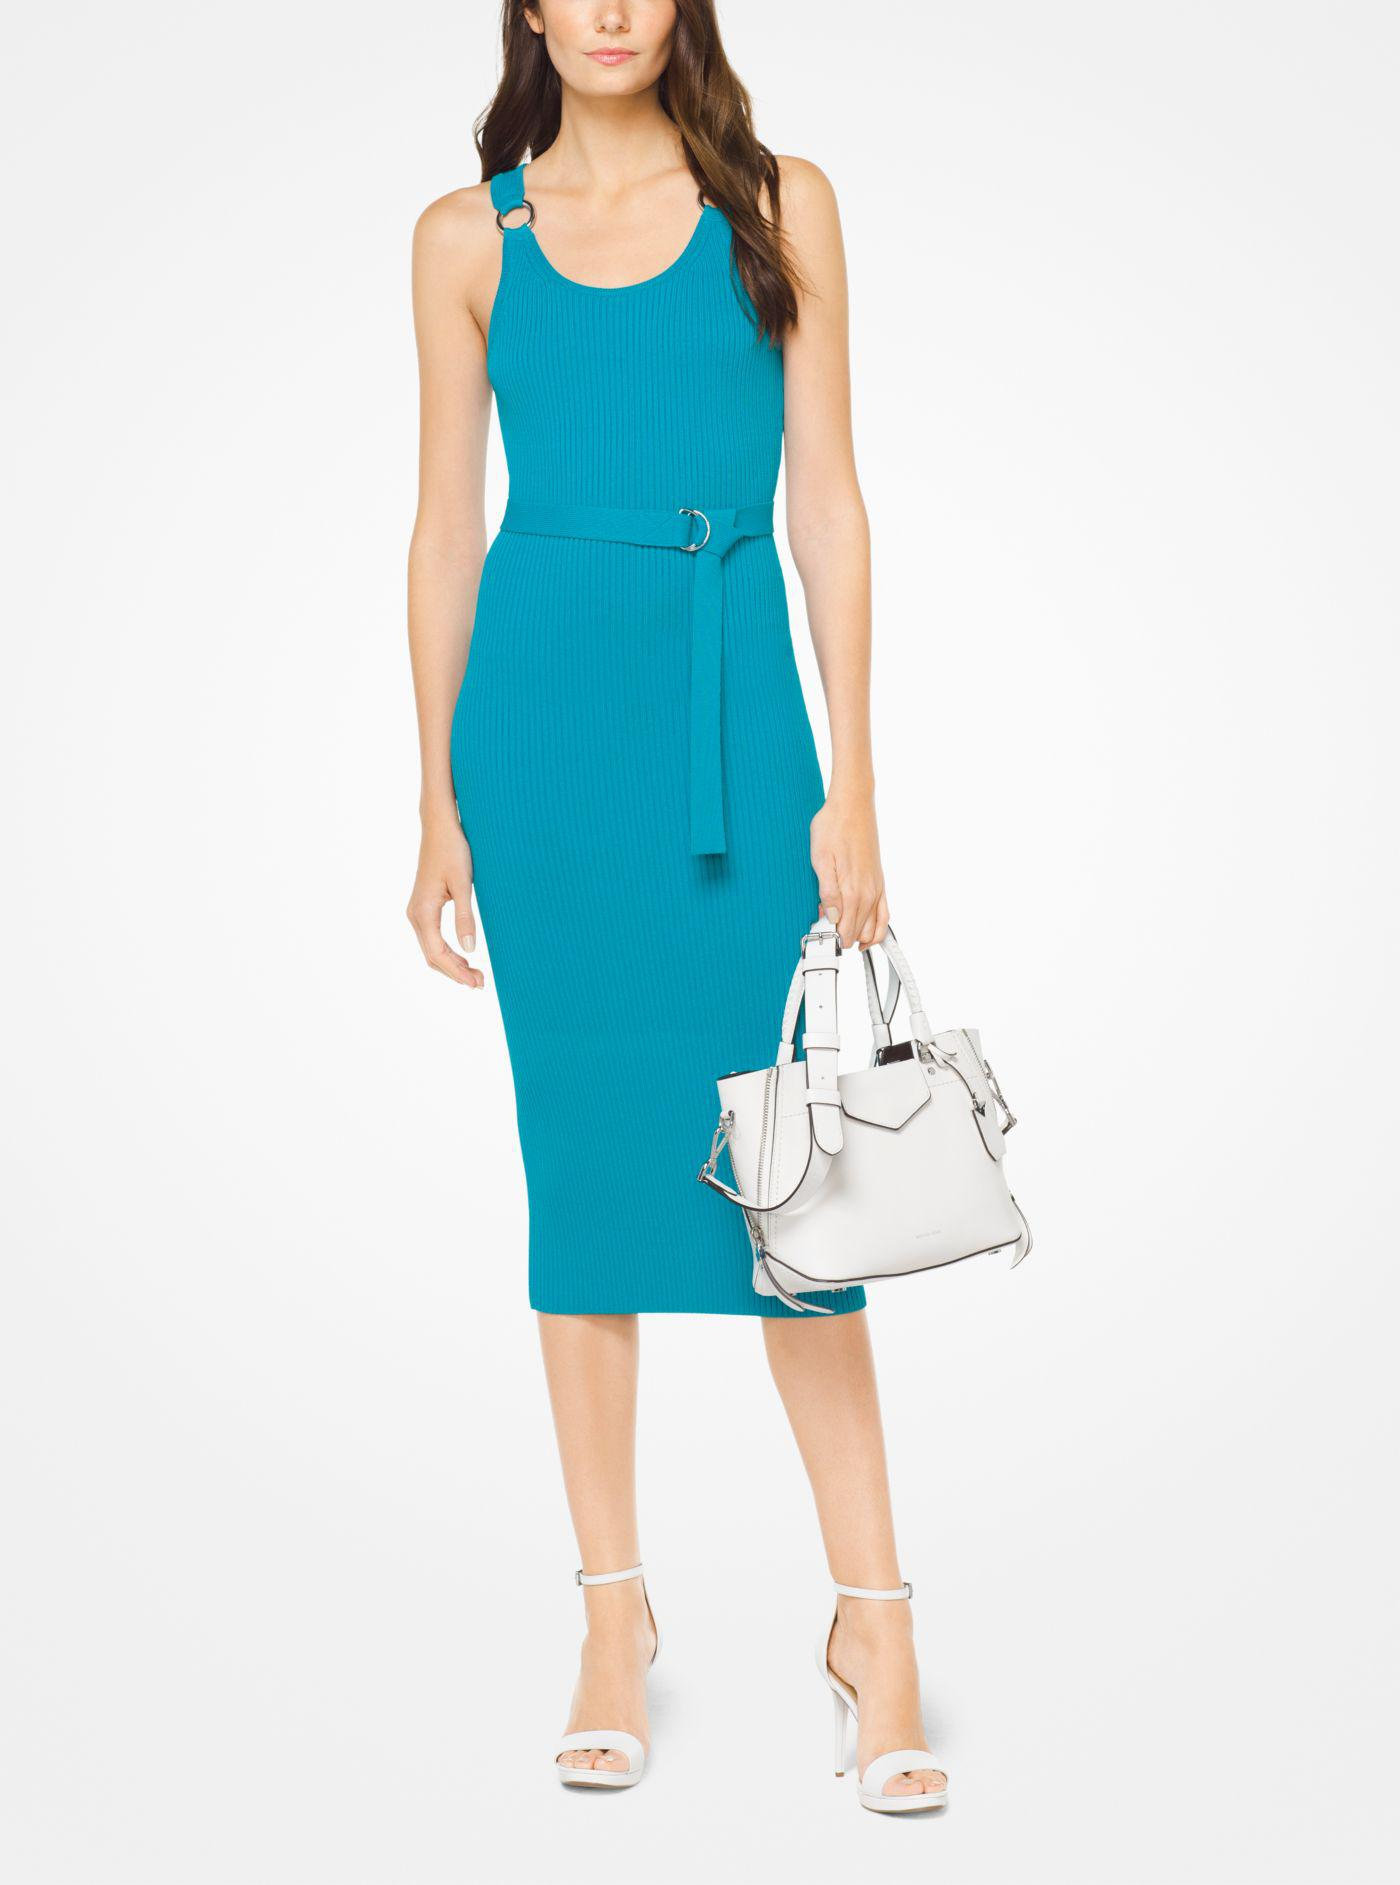 Michael Kors Women S Blue Belted Ribbed Knit Dress